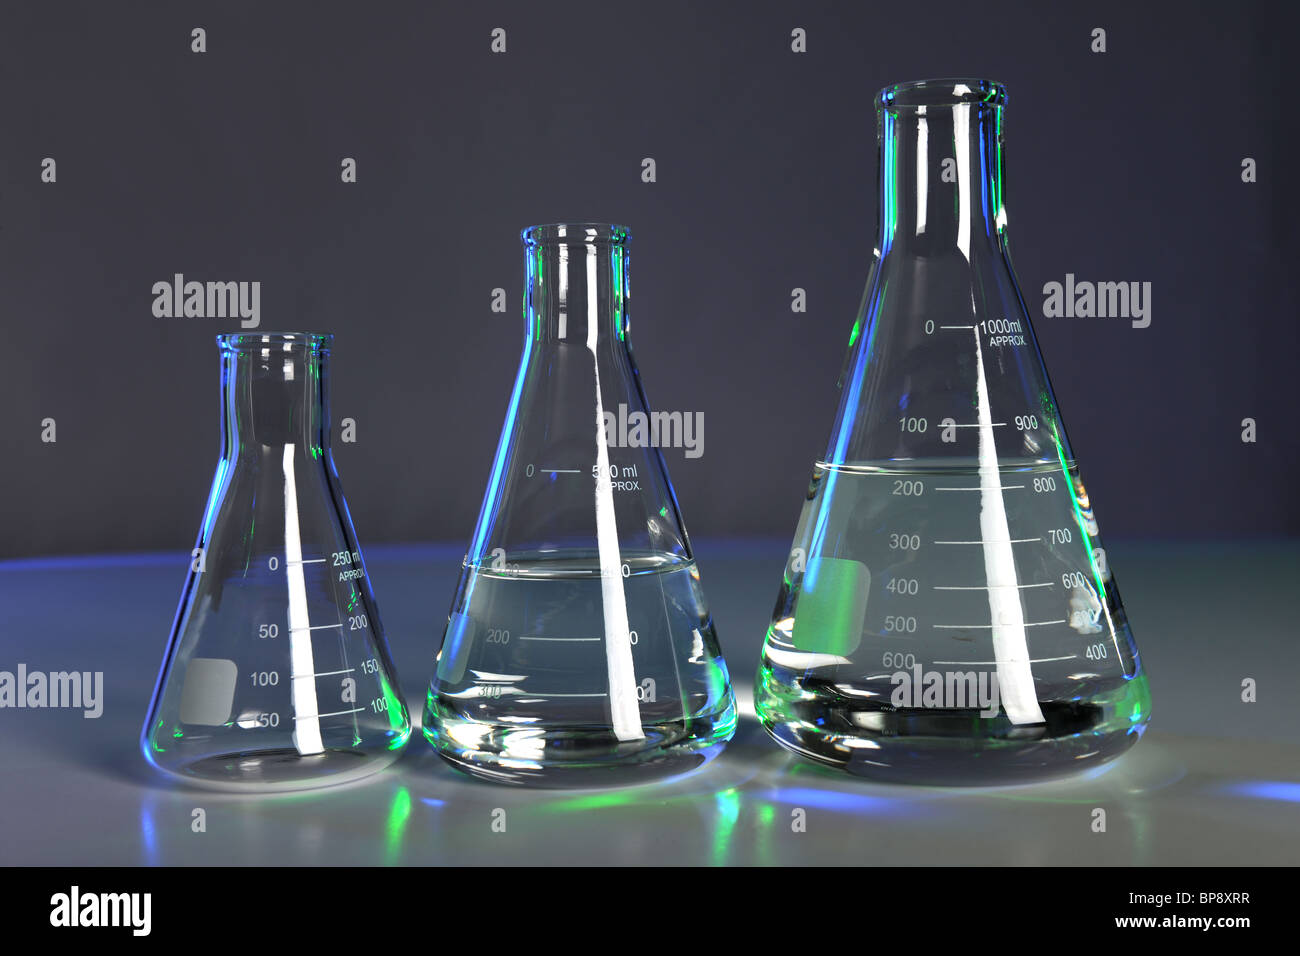 Flasks with fluid in laboratory setting - Stock Image